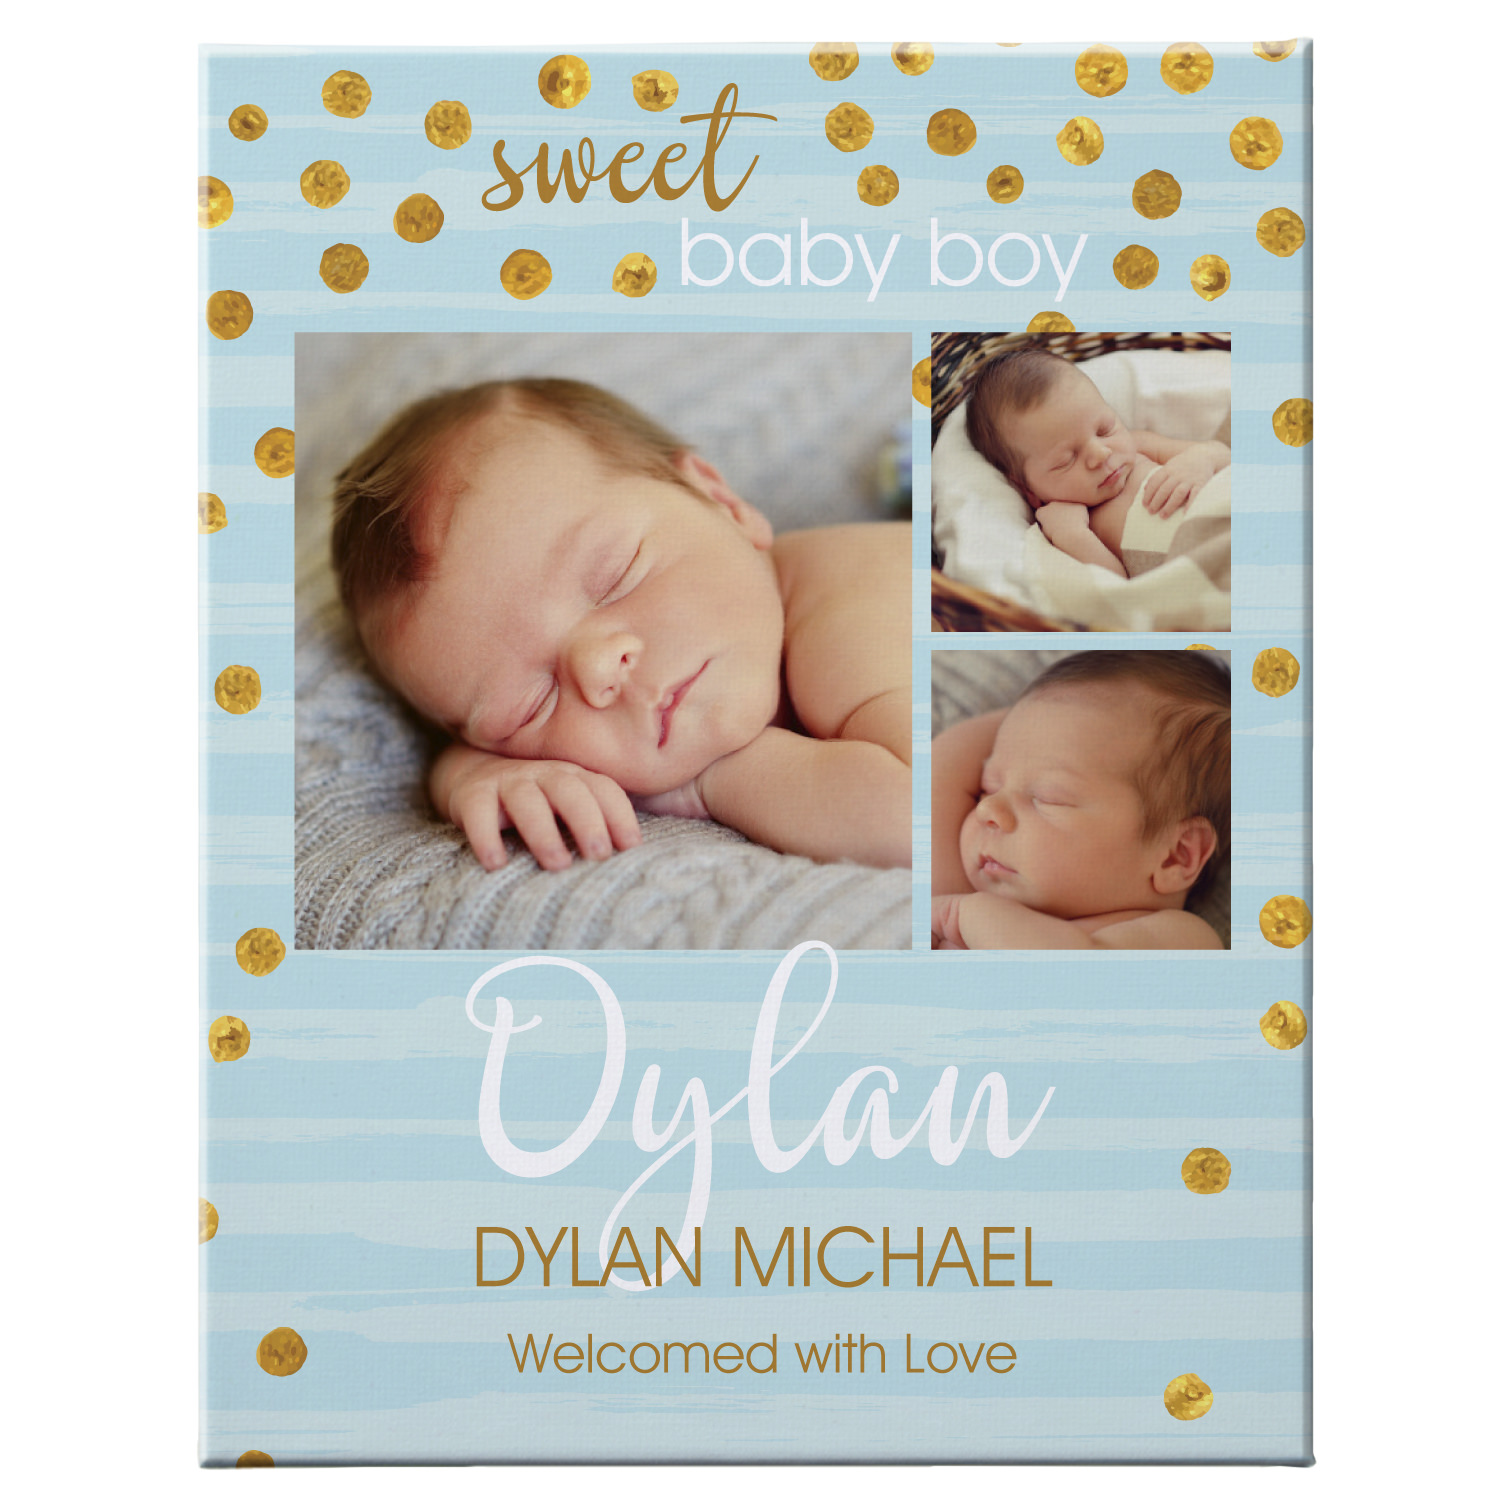 Personalized Introducing Our Baby Photo Canvas - Available in Blue or Pink and 2 Sizes